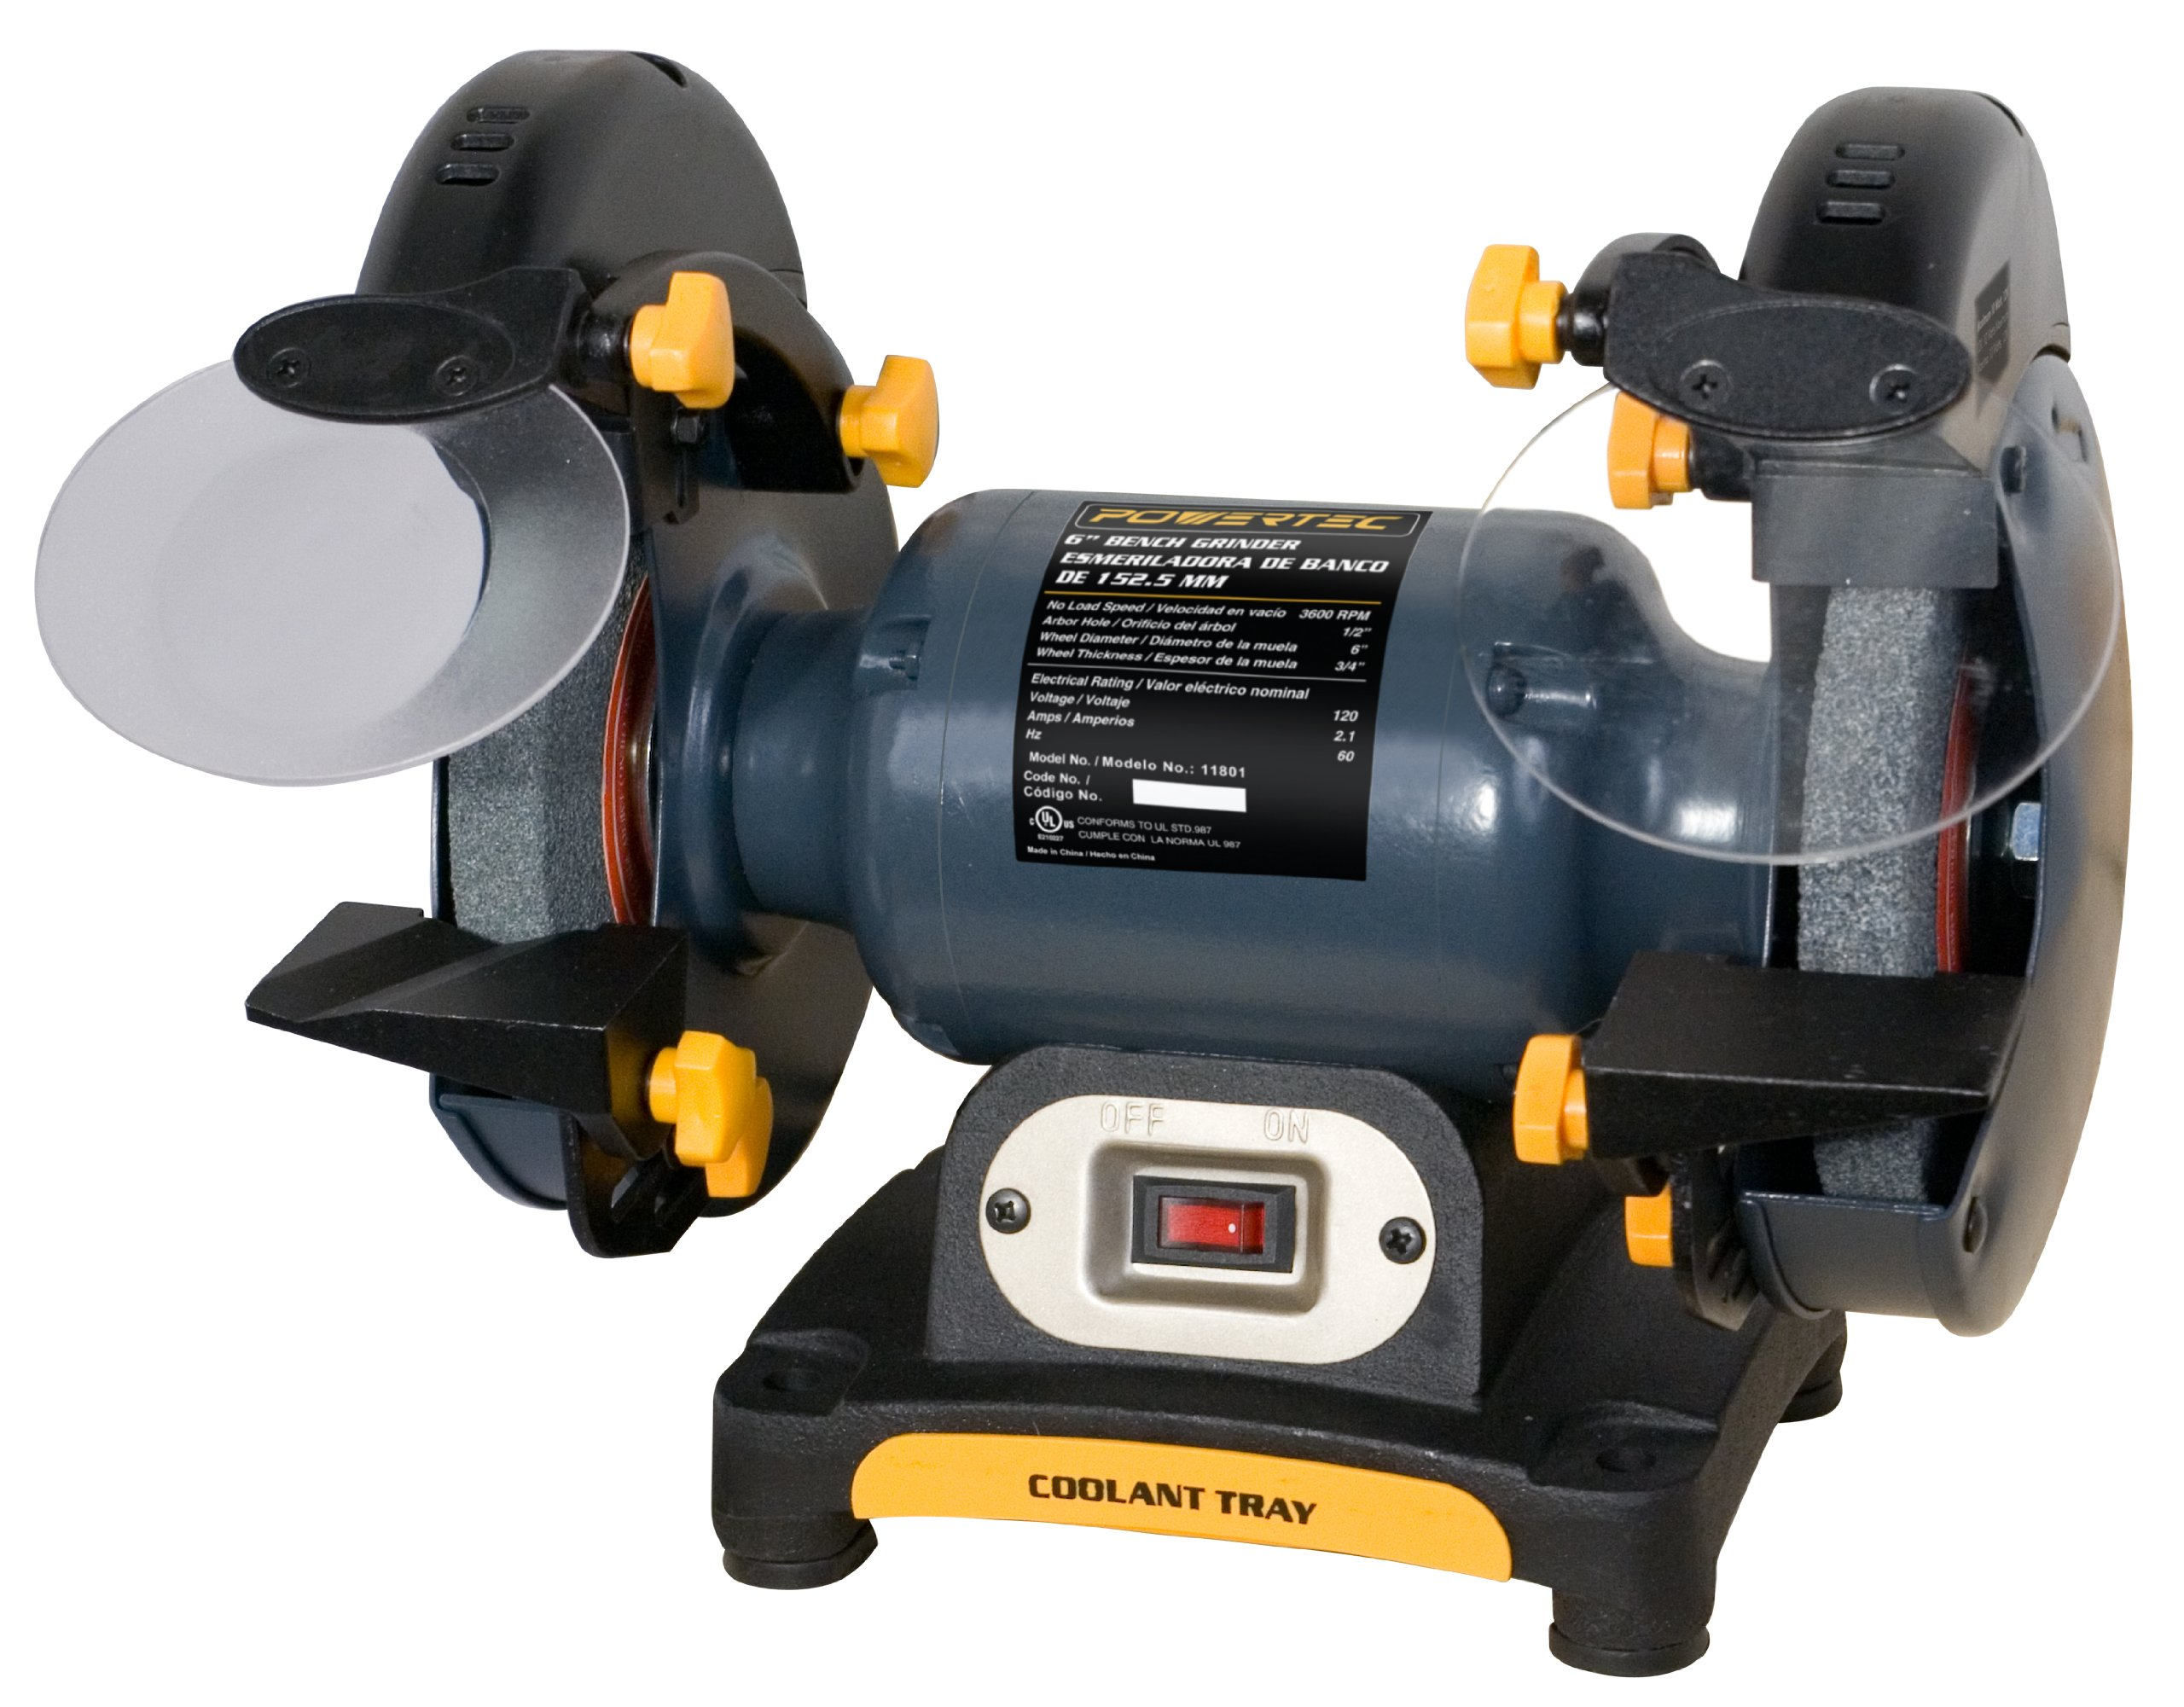 Best Bench Grinder 2018 Reviews And Top Picks